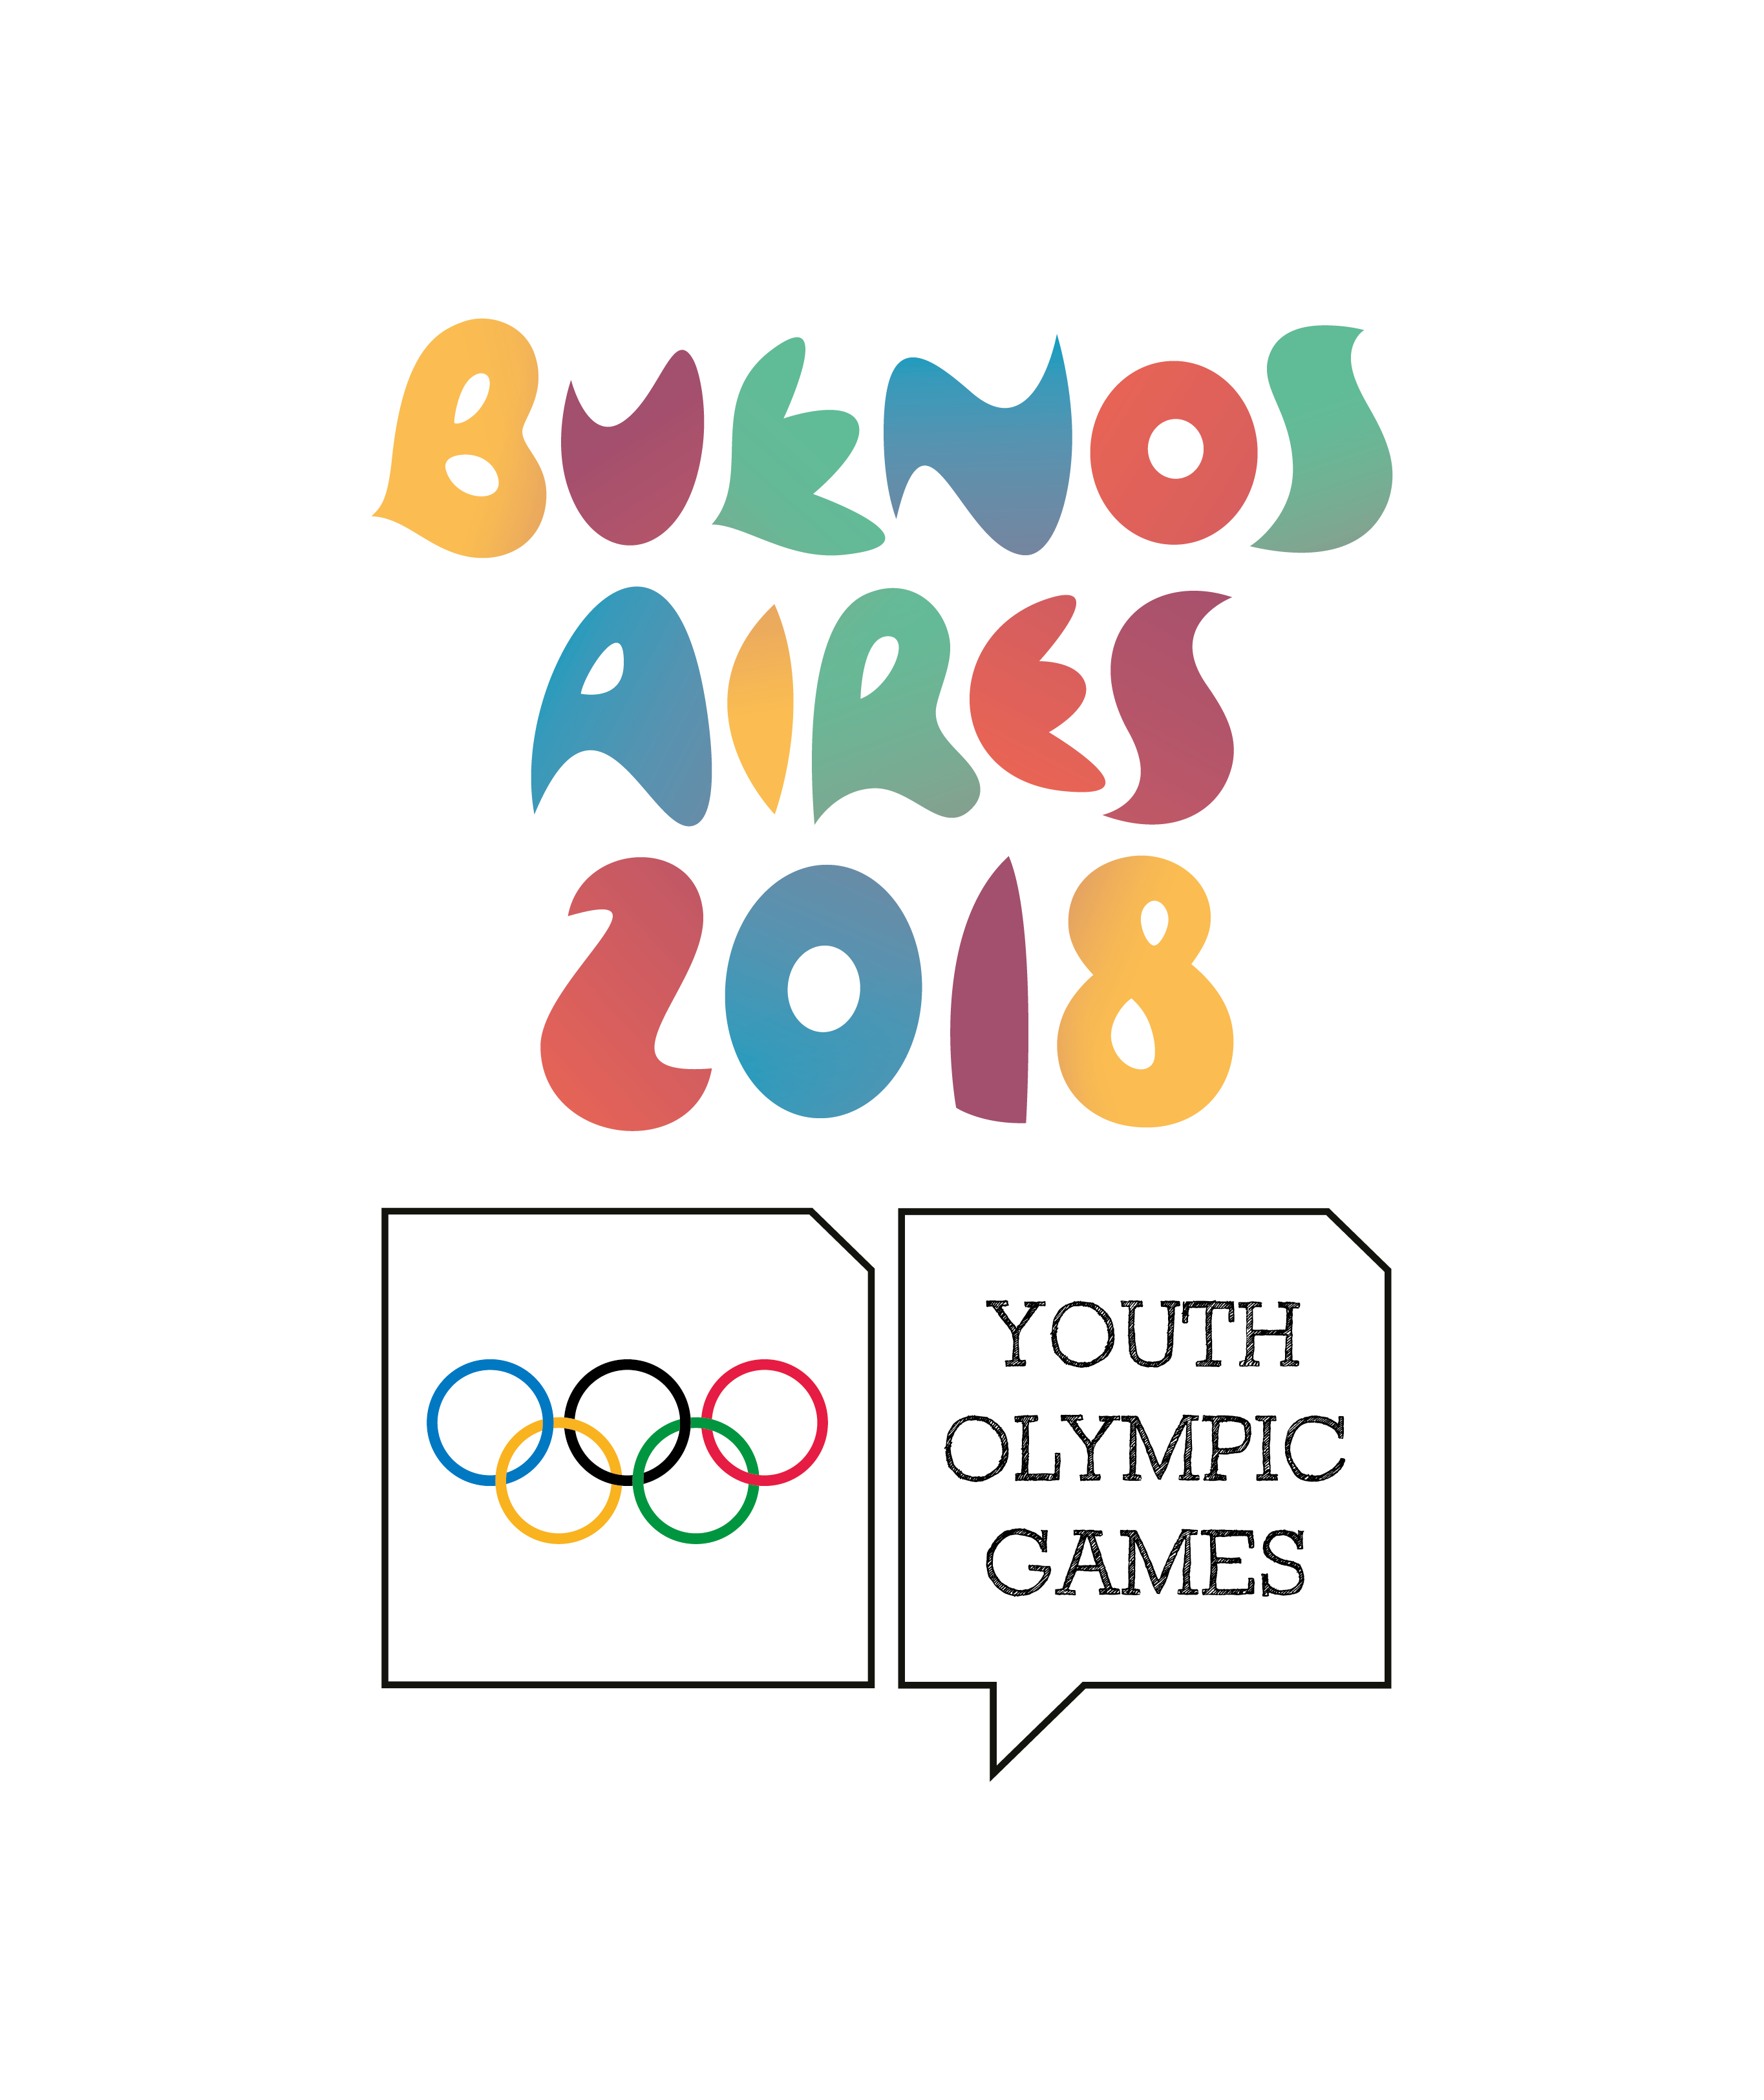 III Summer Youth Olympic Games